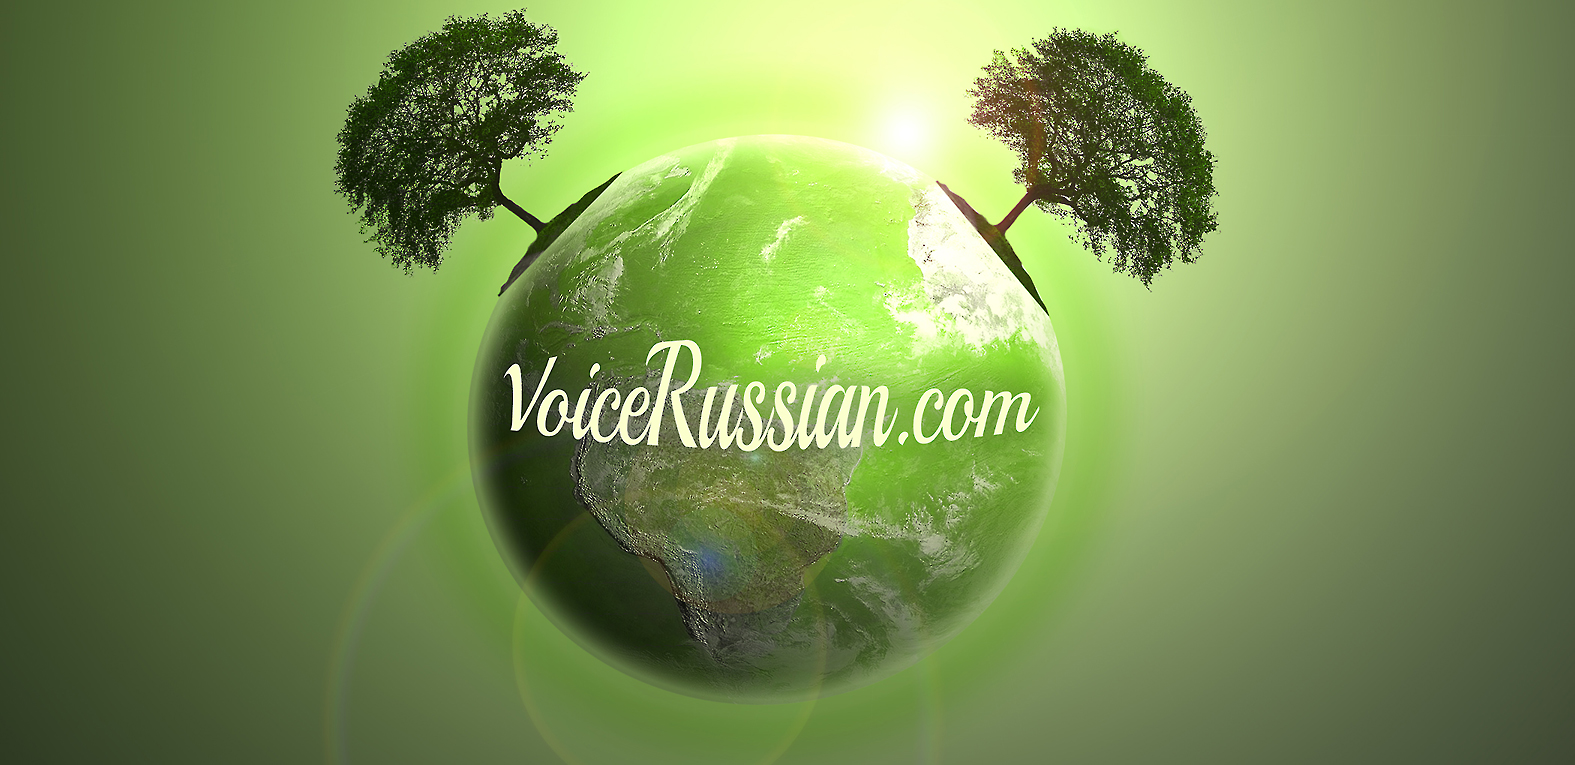 Get Your Russian Text Voiced-Over - The Domain Of Use